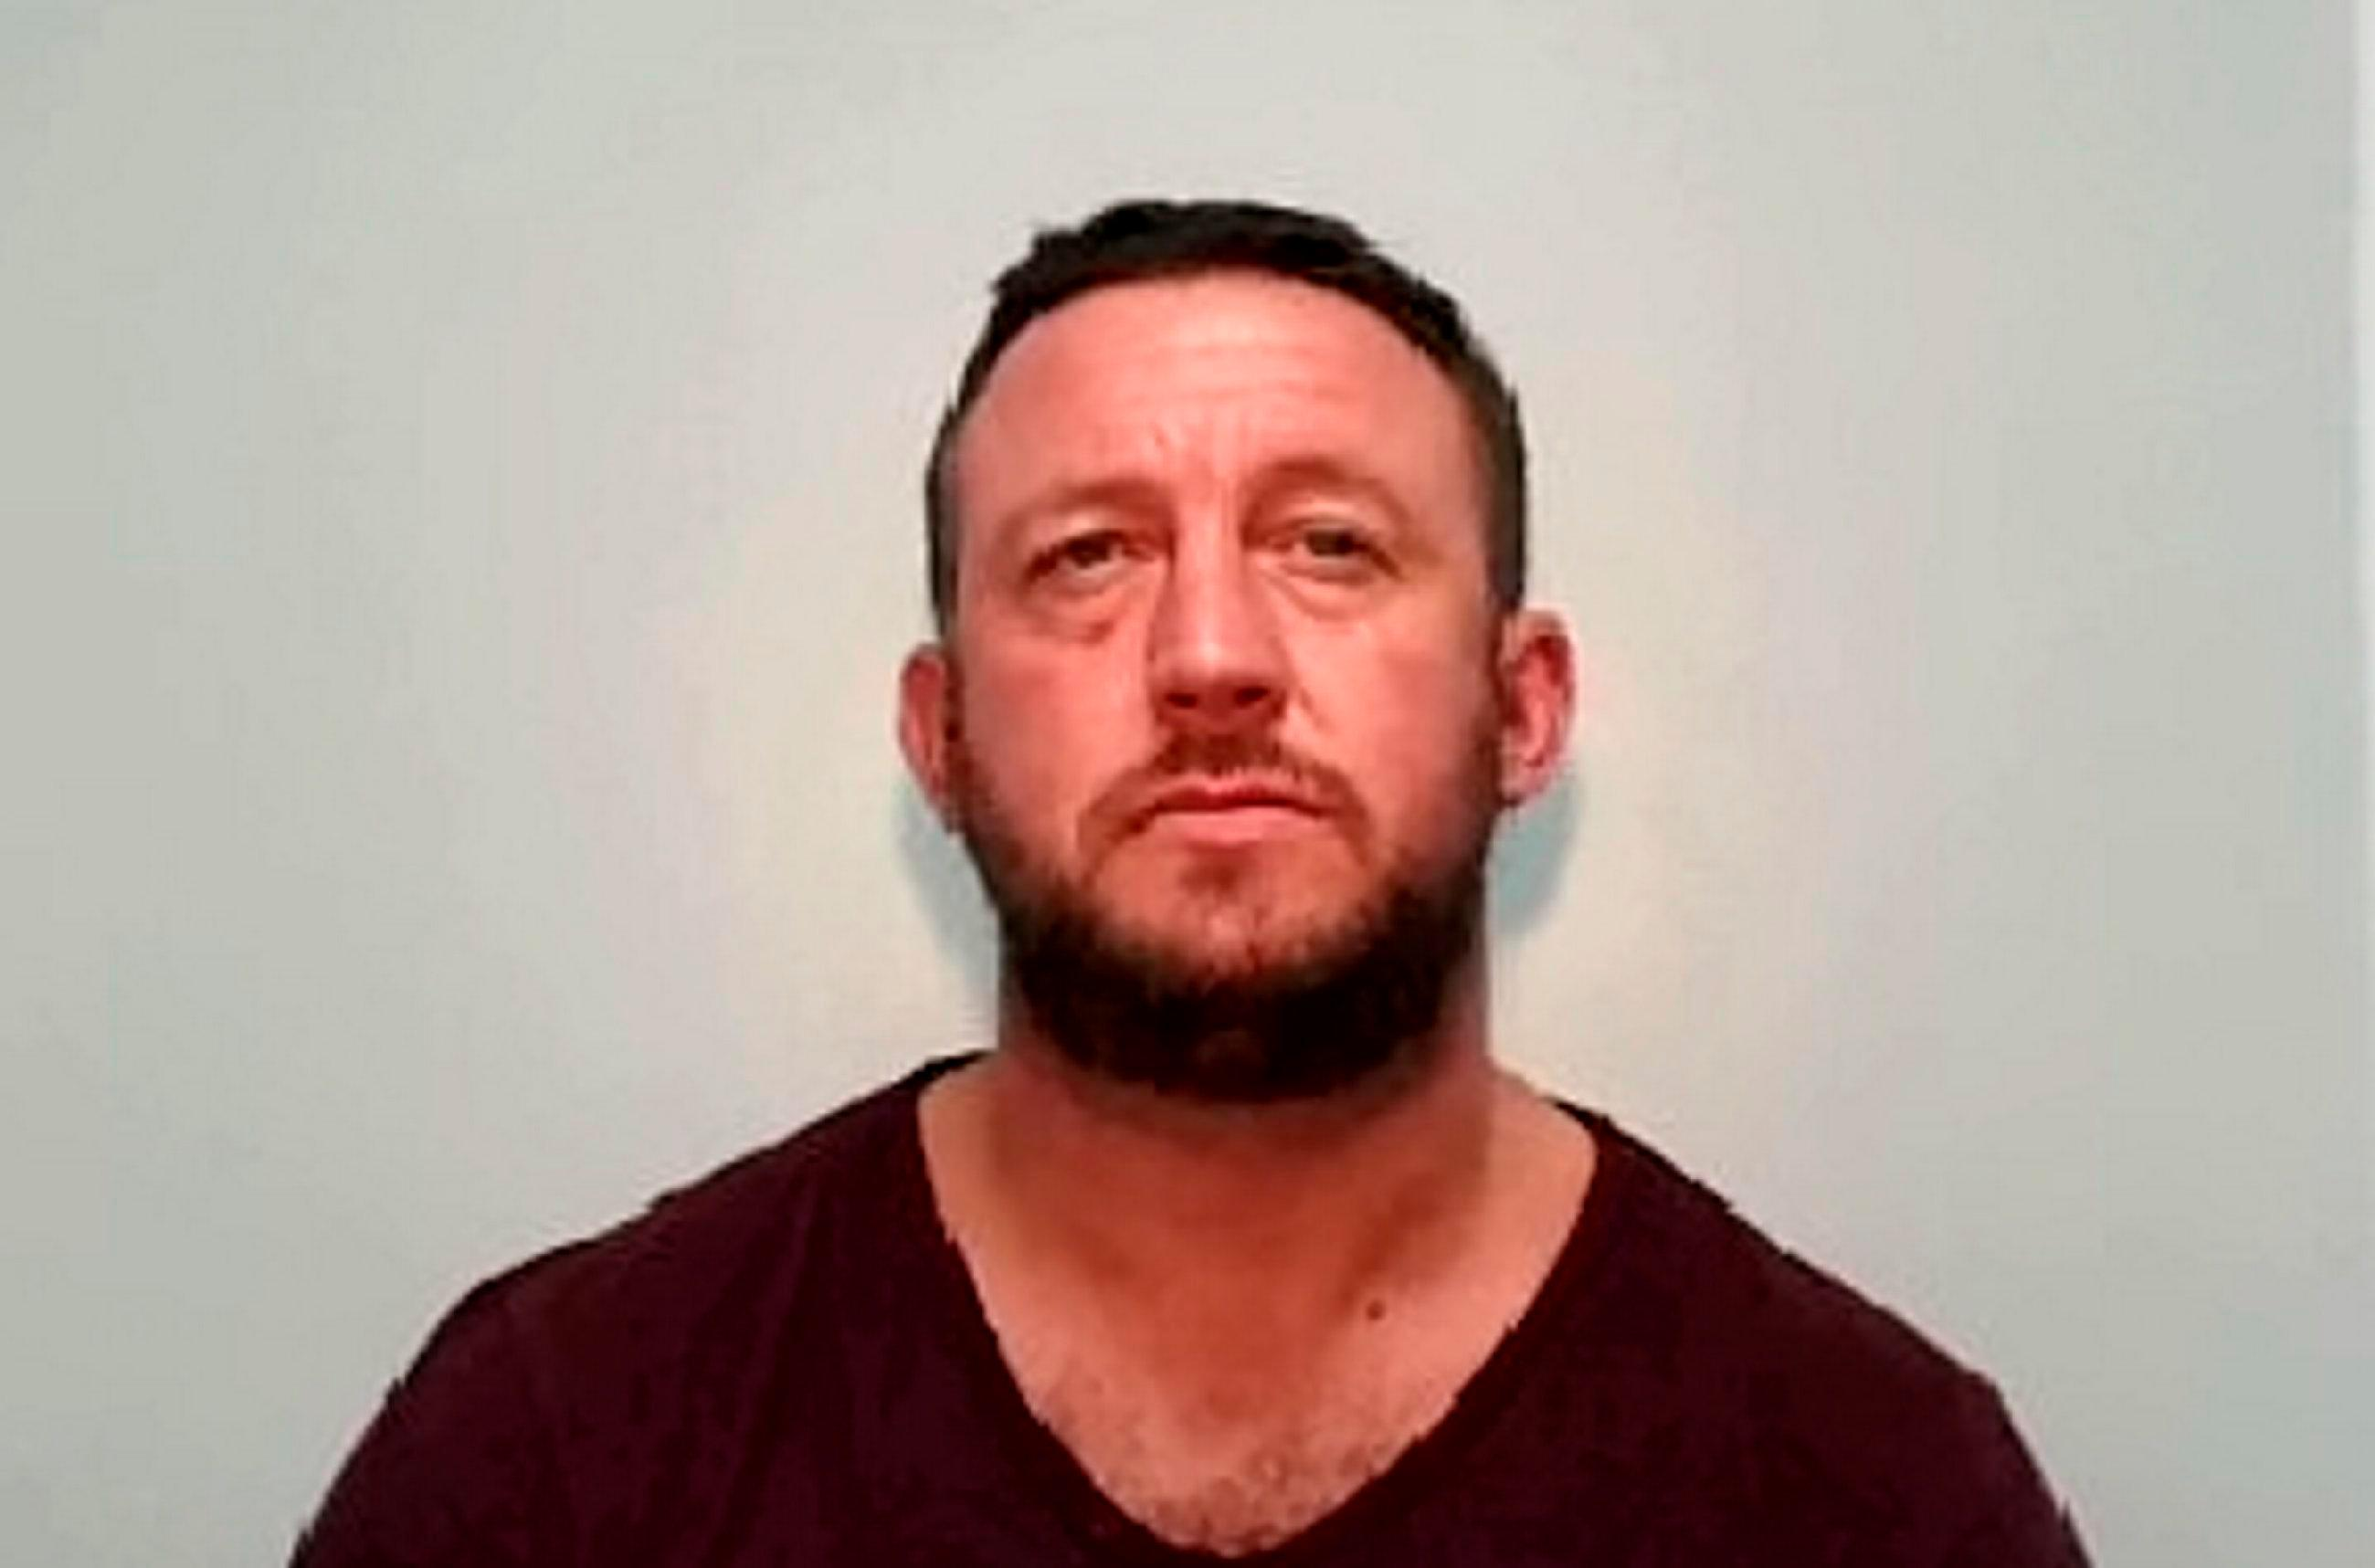 Teen girl raped by fake Good Samaritan after he locked her in his car when she got in by mistake thinking it was her cab